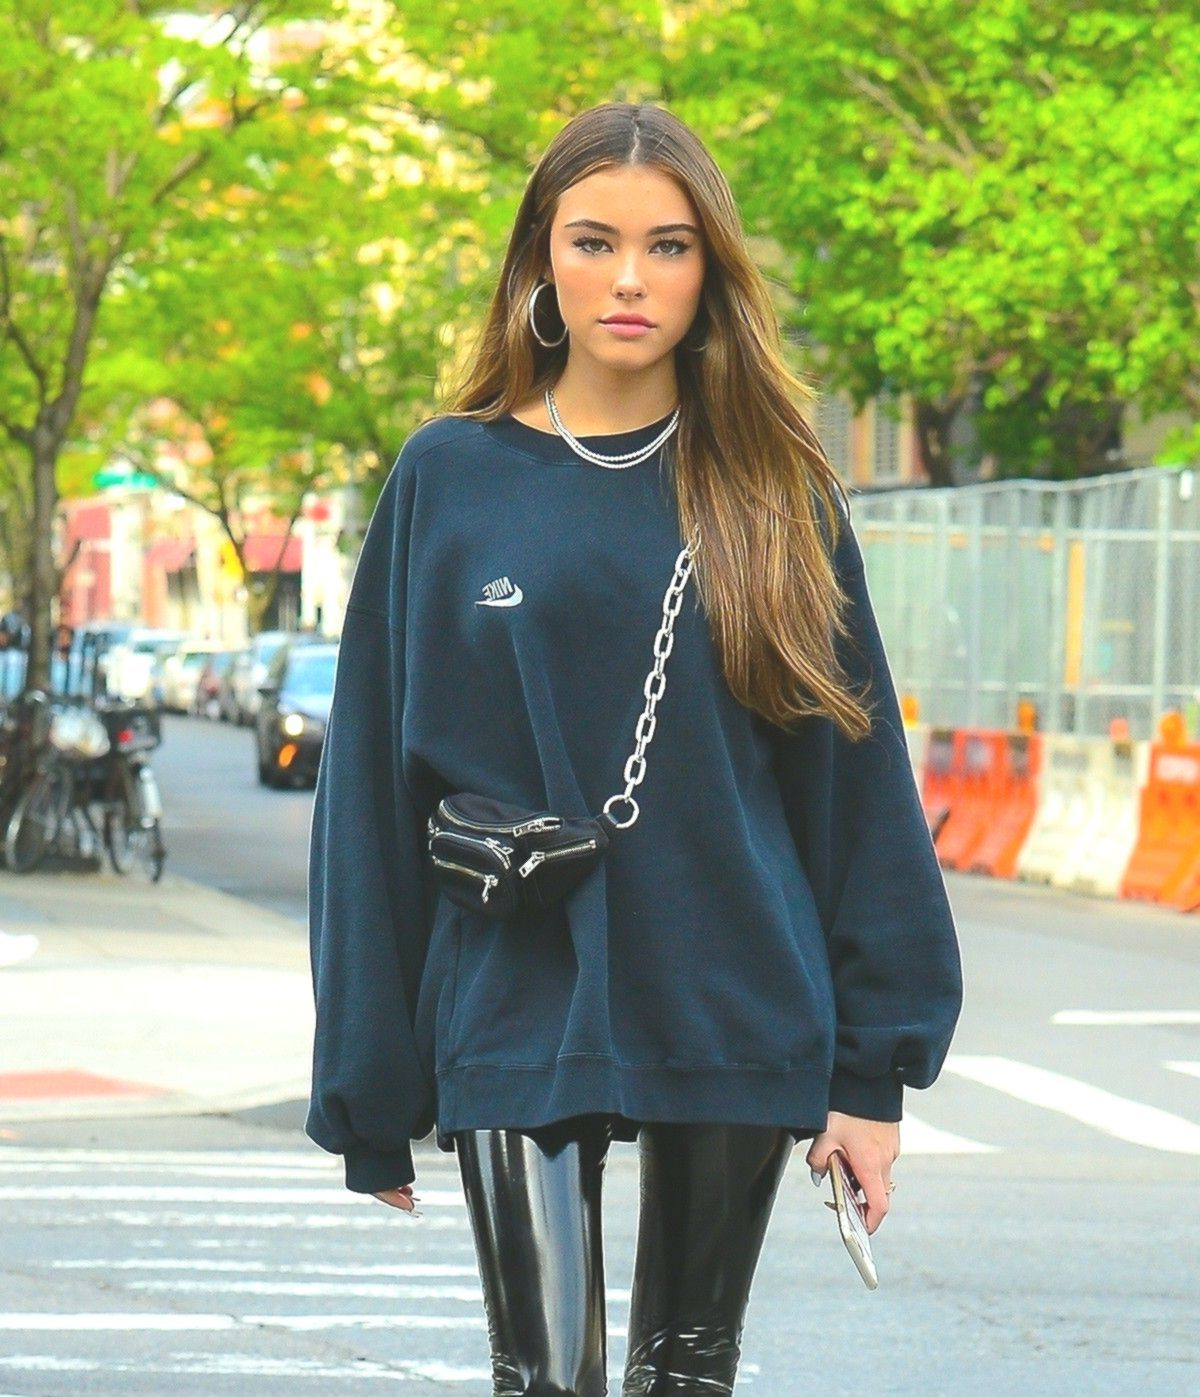 Womenshop Space Madison Beer Outfits Nike Sweatshirts Beer Outfit [ 1397 x 1200 Pixel ]